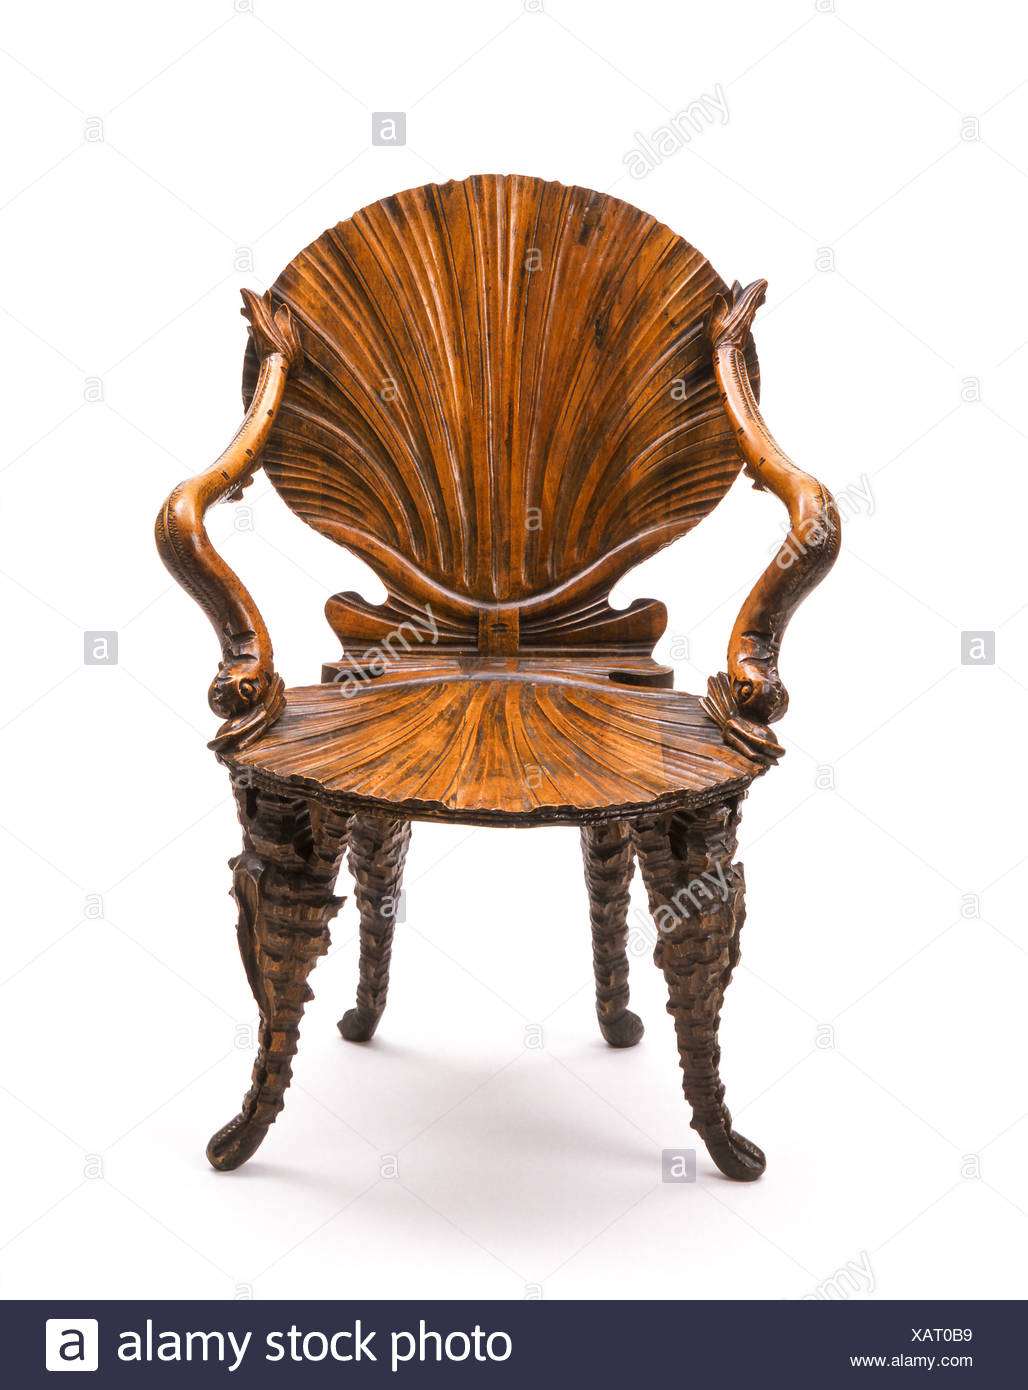 Alter Antiker Stuhl, Antiquitäten..Antique chair..Old, Chair, Antique, Antiques, Ancient, Furniture, Nobody, Seat, Rarity - Stock Image